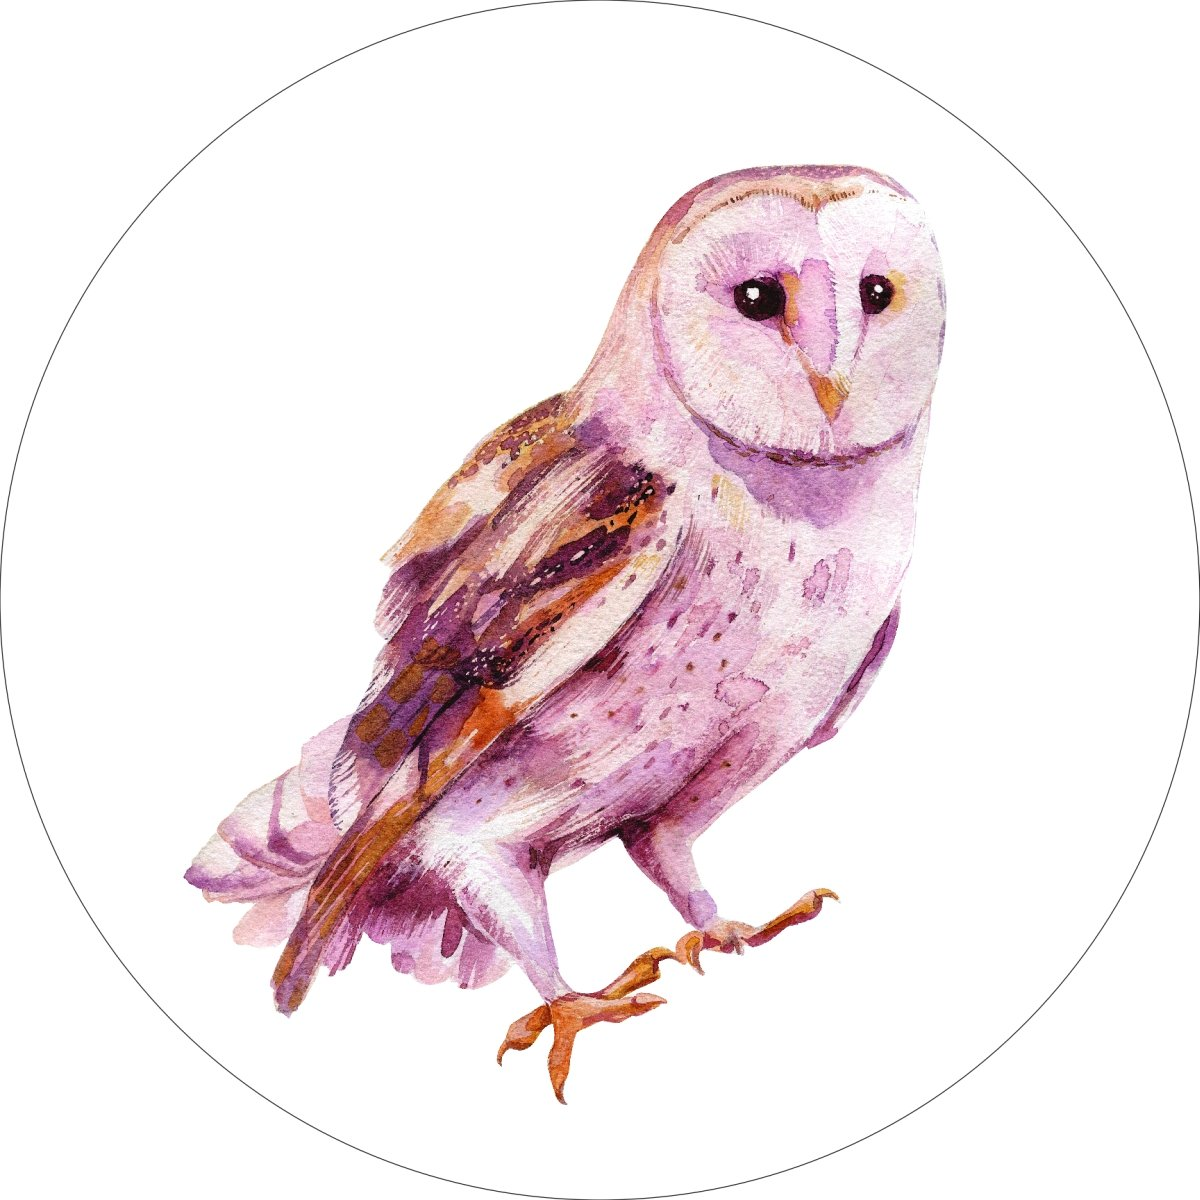 Owl Home Wall Shelf Decor Animal Decorations Watercolor Round Sign - 18 Inch, Metal